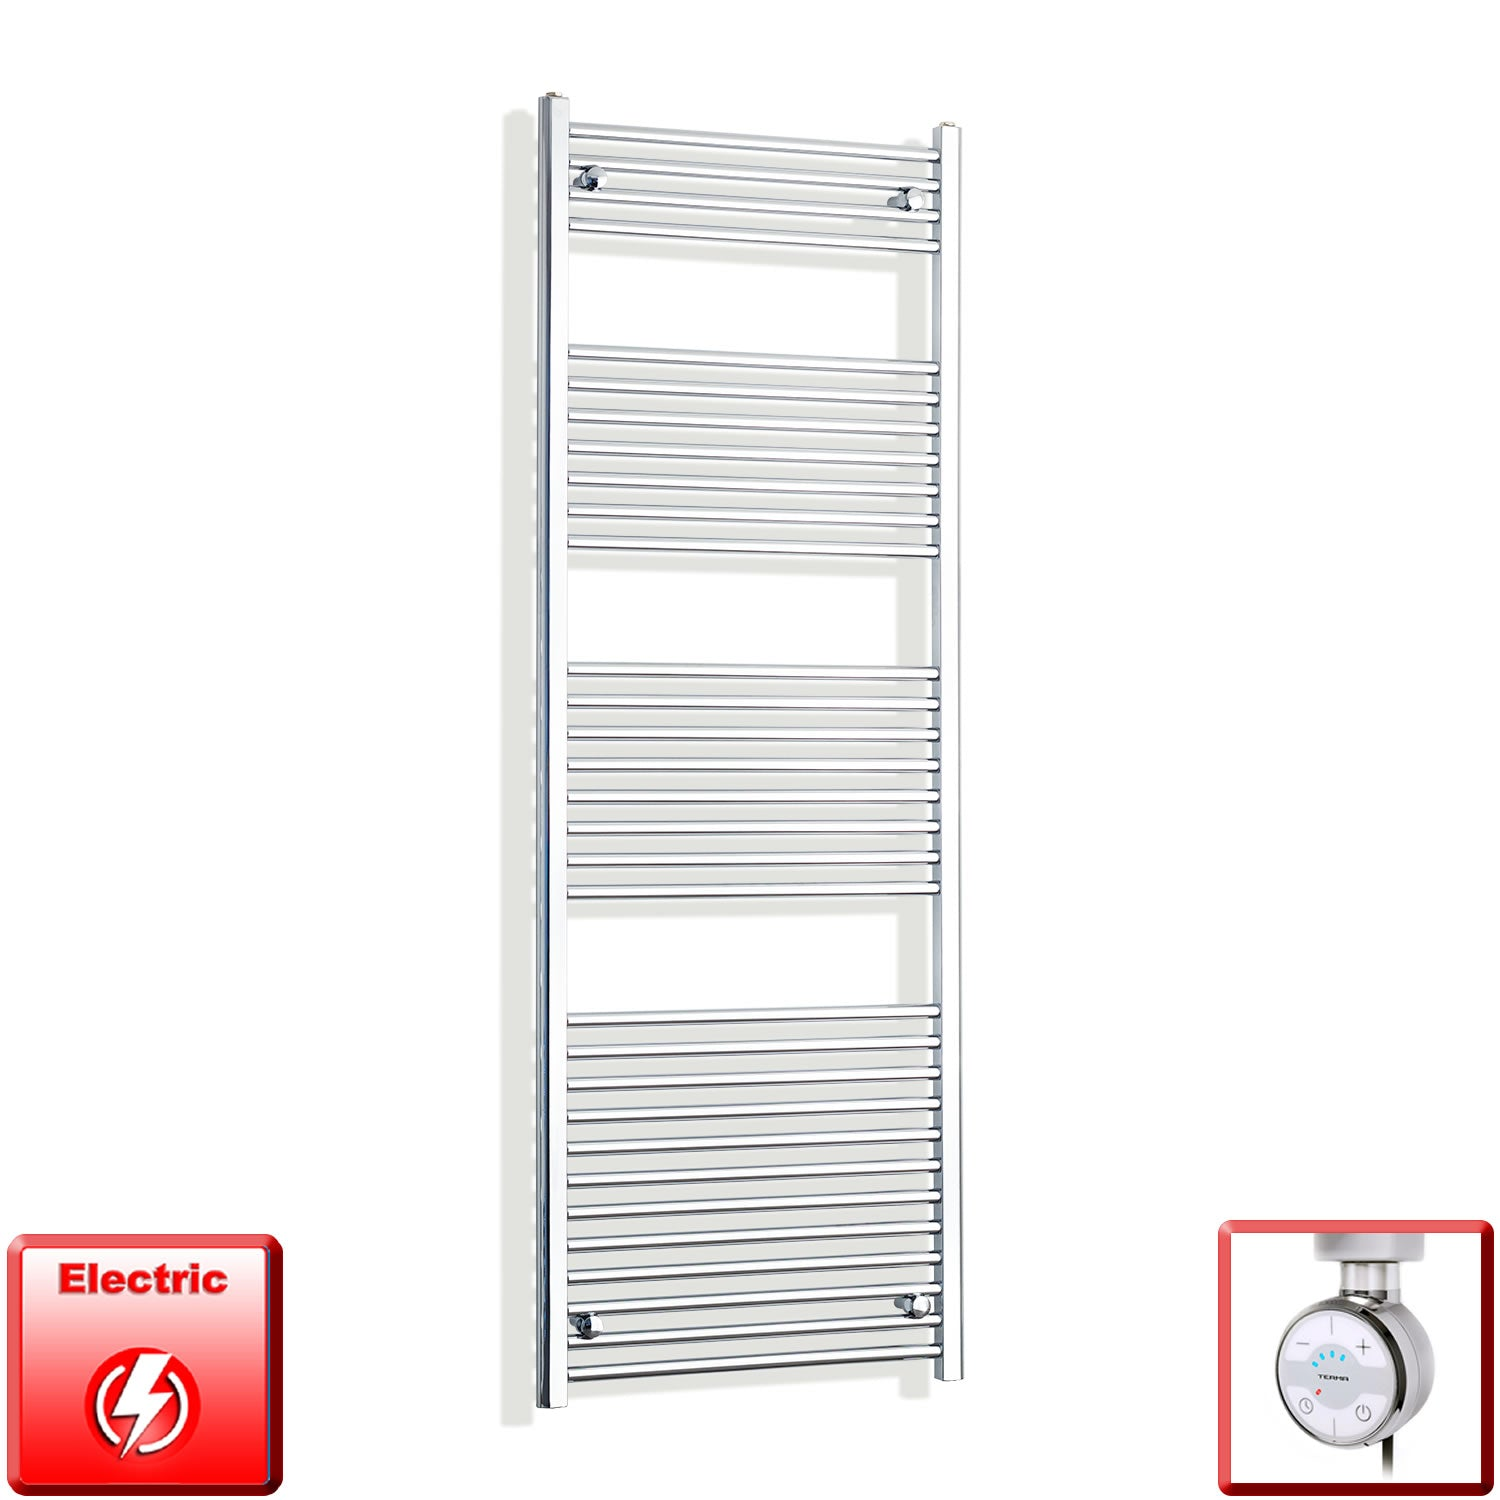 650mm Wide 1800mm High Pre-Filled Chrome Electric Towel Rail Radiator With Thermostatic MOA Element